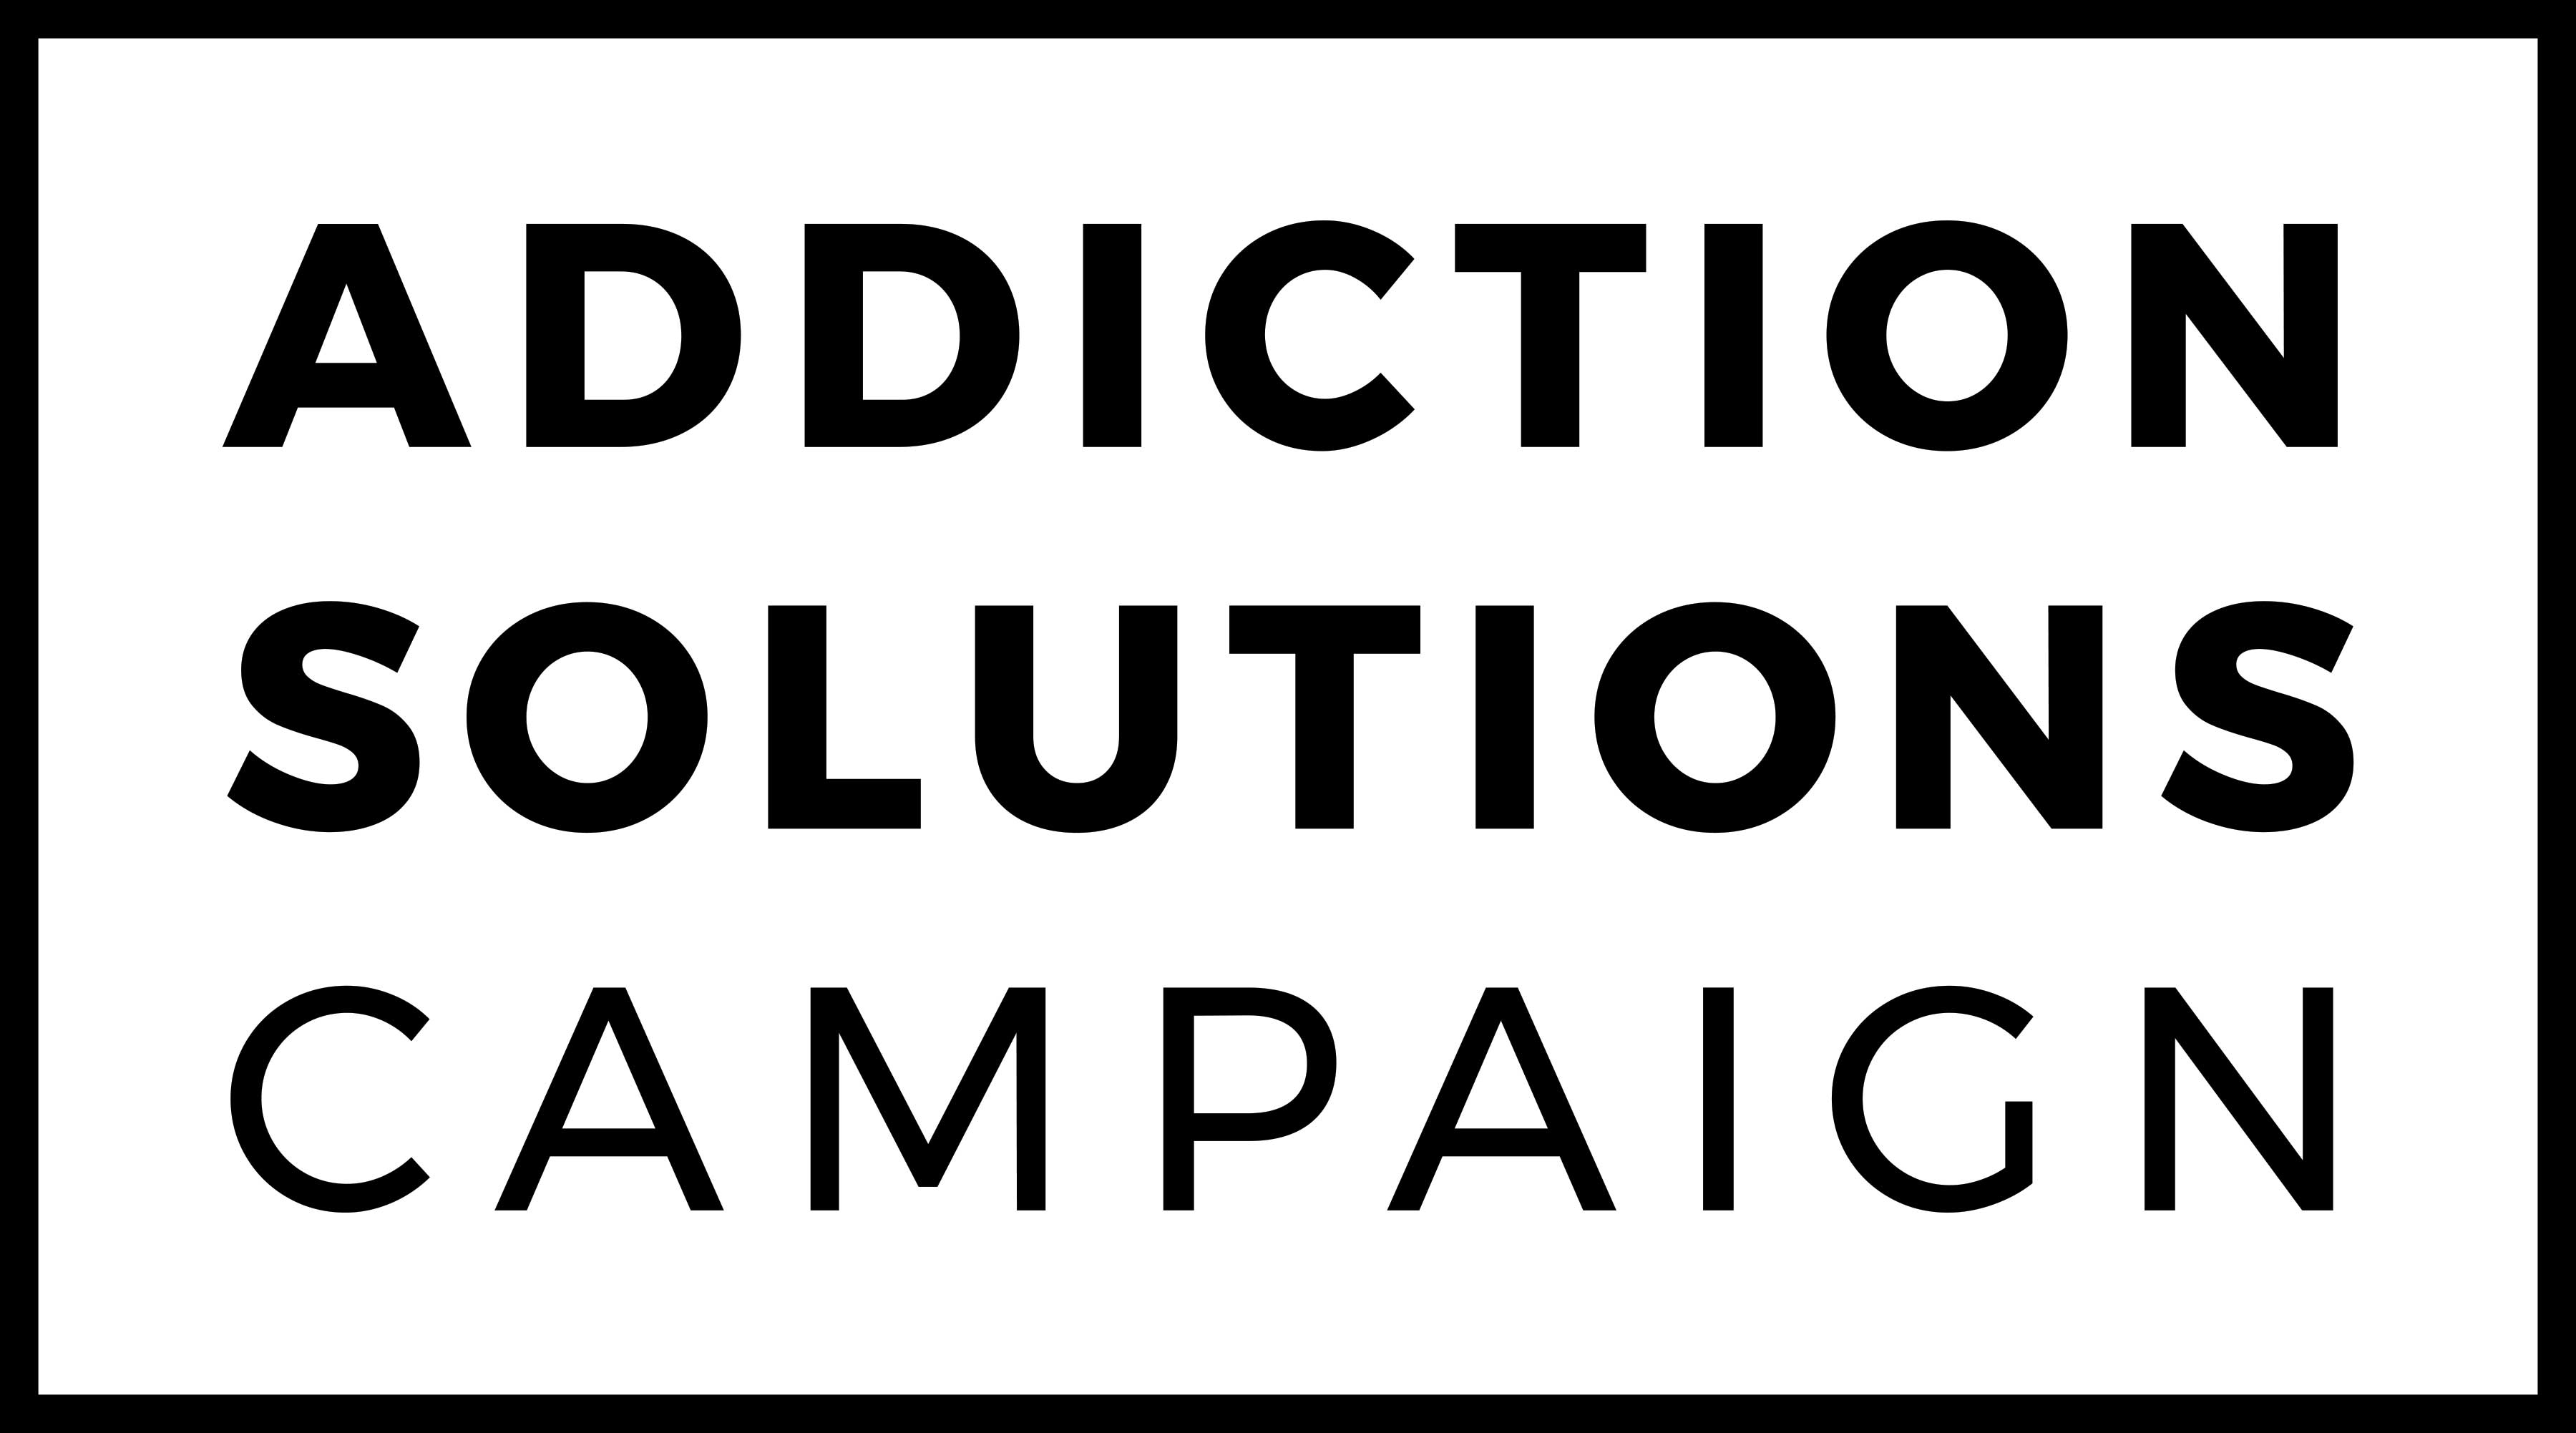 Addiction Solutions Campaign Forms Against Backdrop of